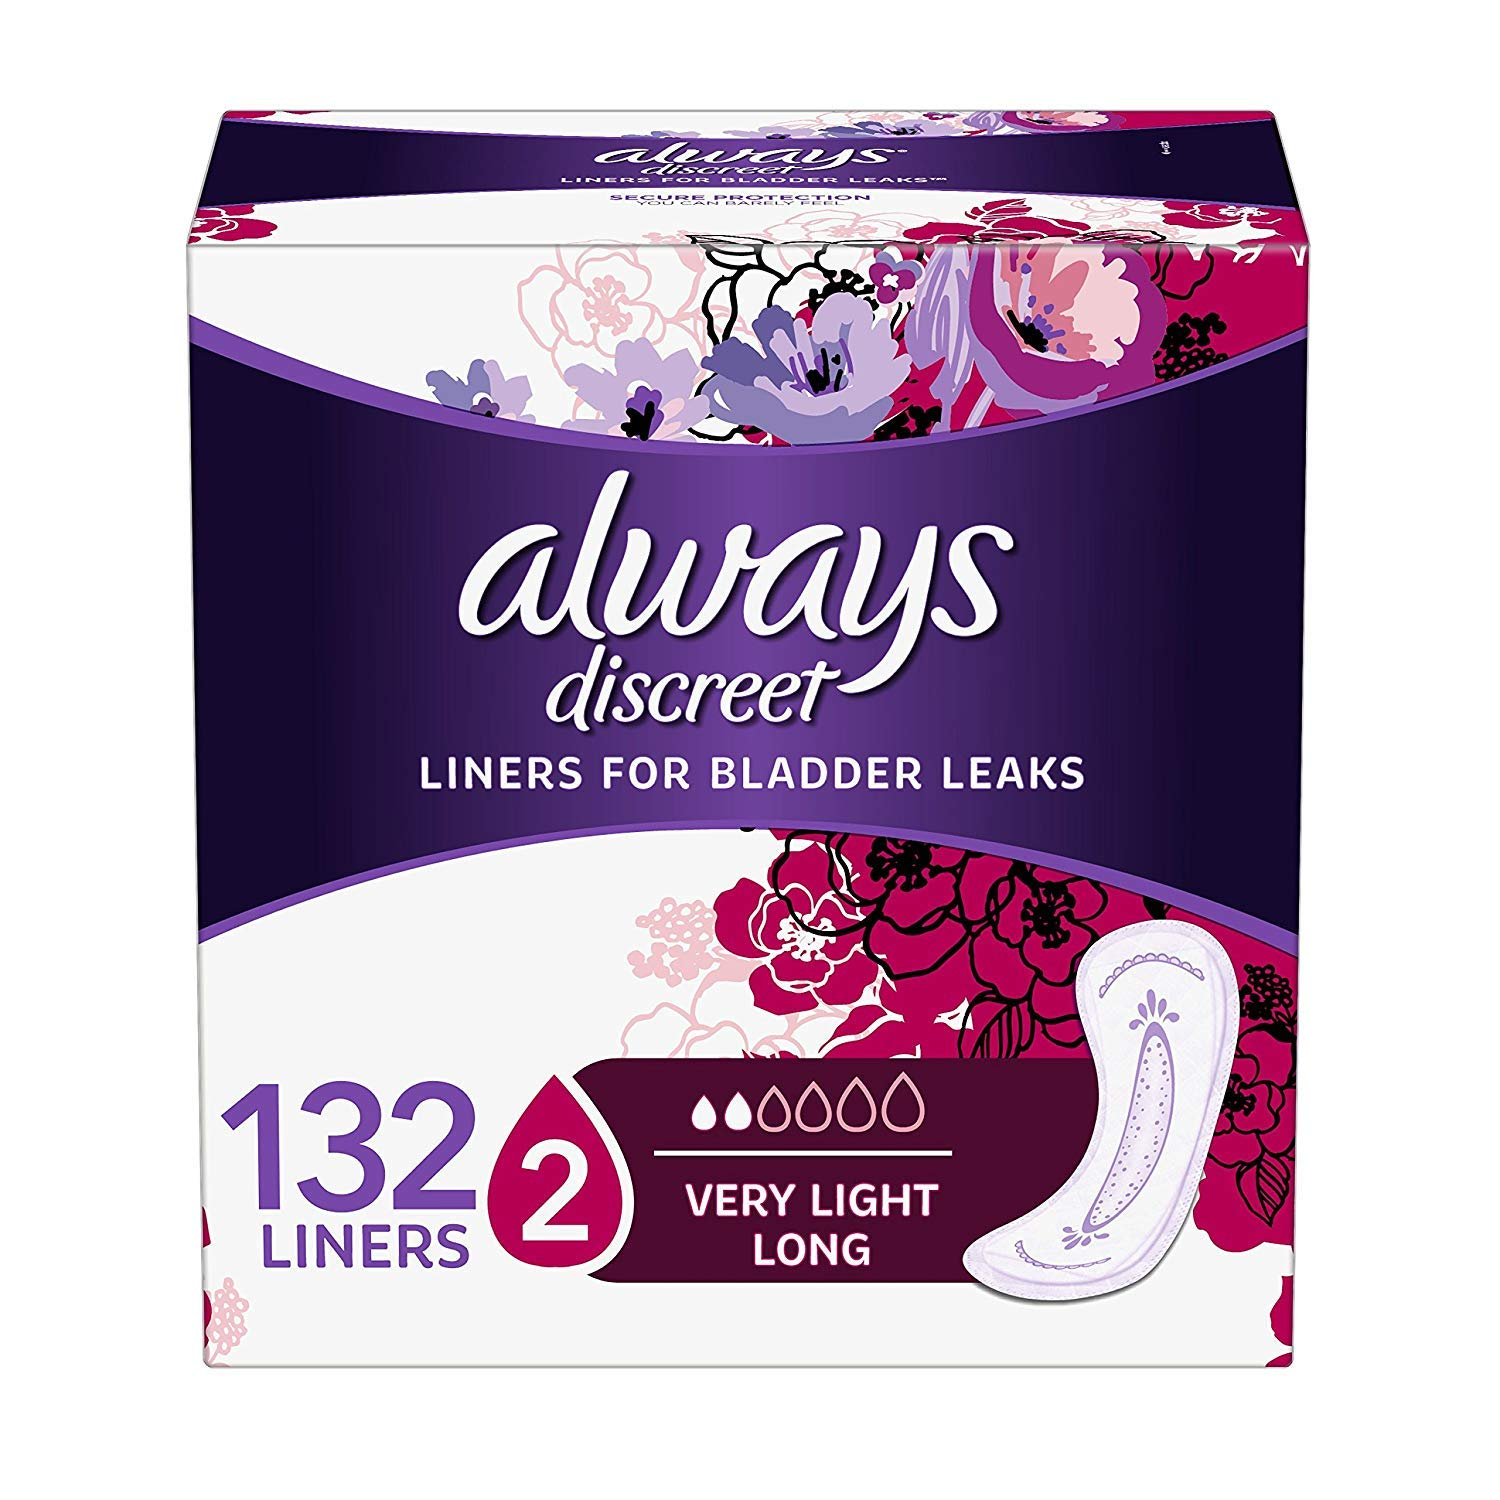 Always Discreet, Incontinence Liners, Very Light, Long Length, 44 Count - Pack of 3 (132 Total Count) (4 Case (368 Count))